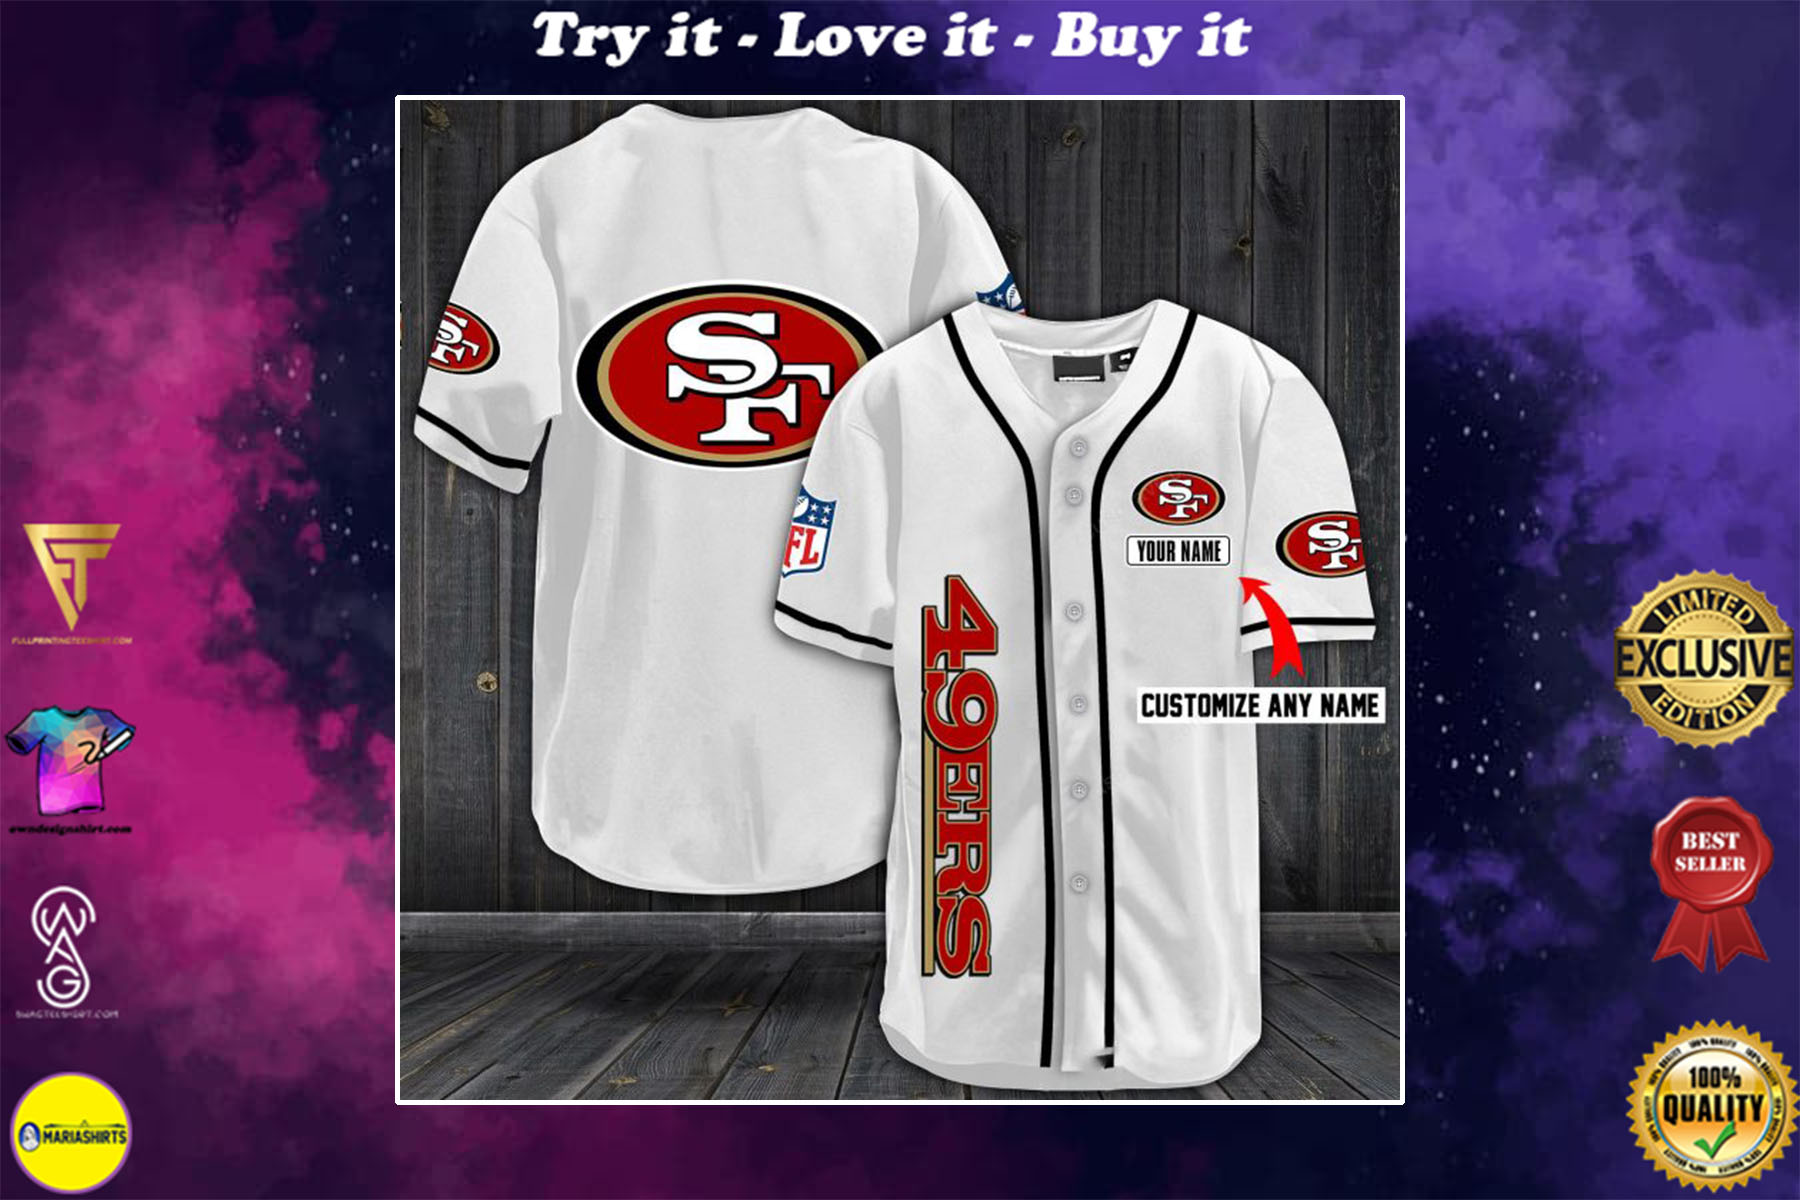 [special edition] personalized name jersey san francisco 49ers full printing shirt - maria